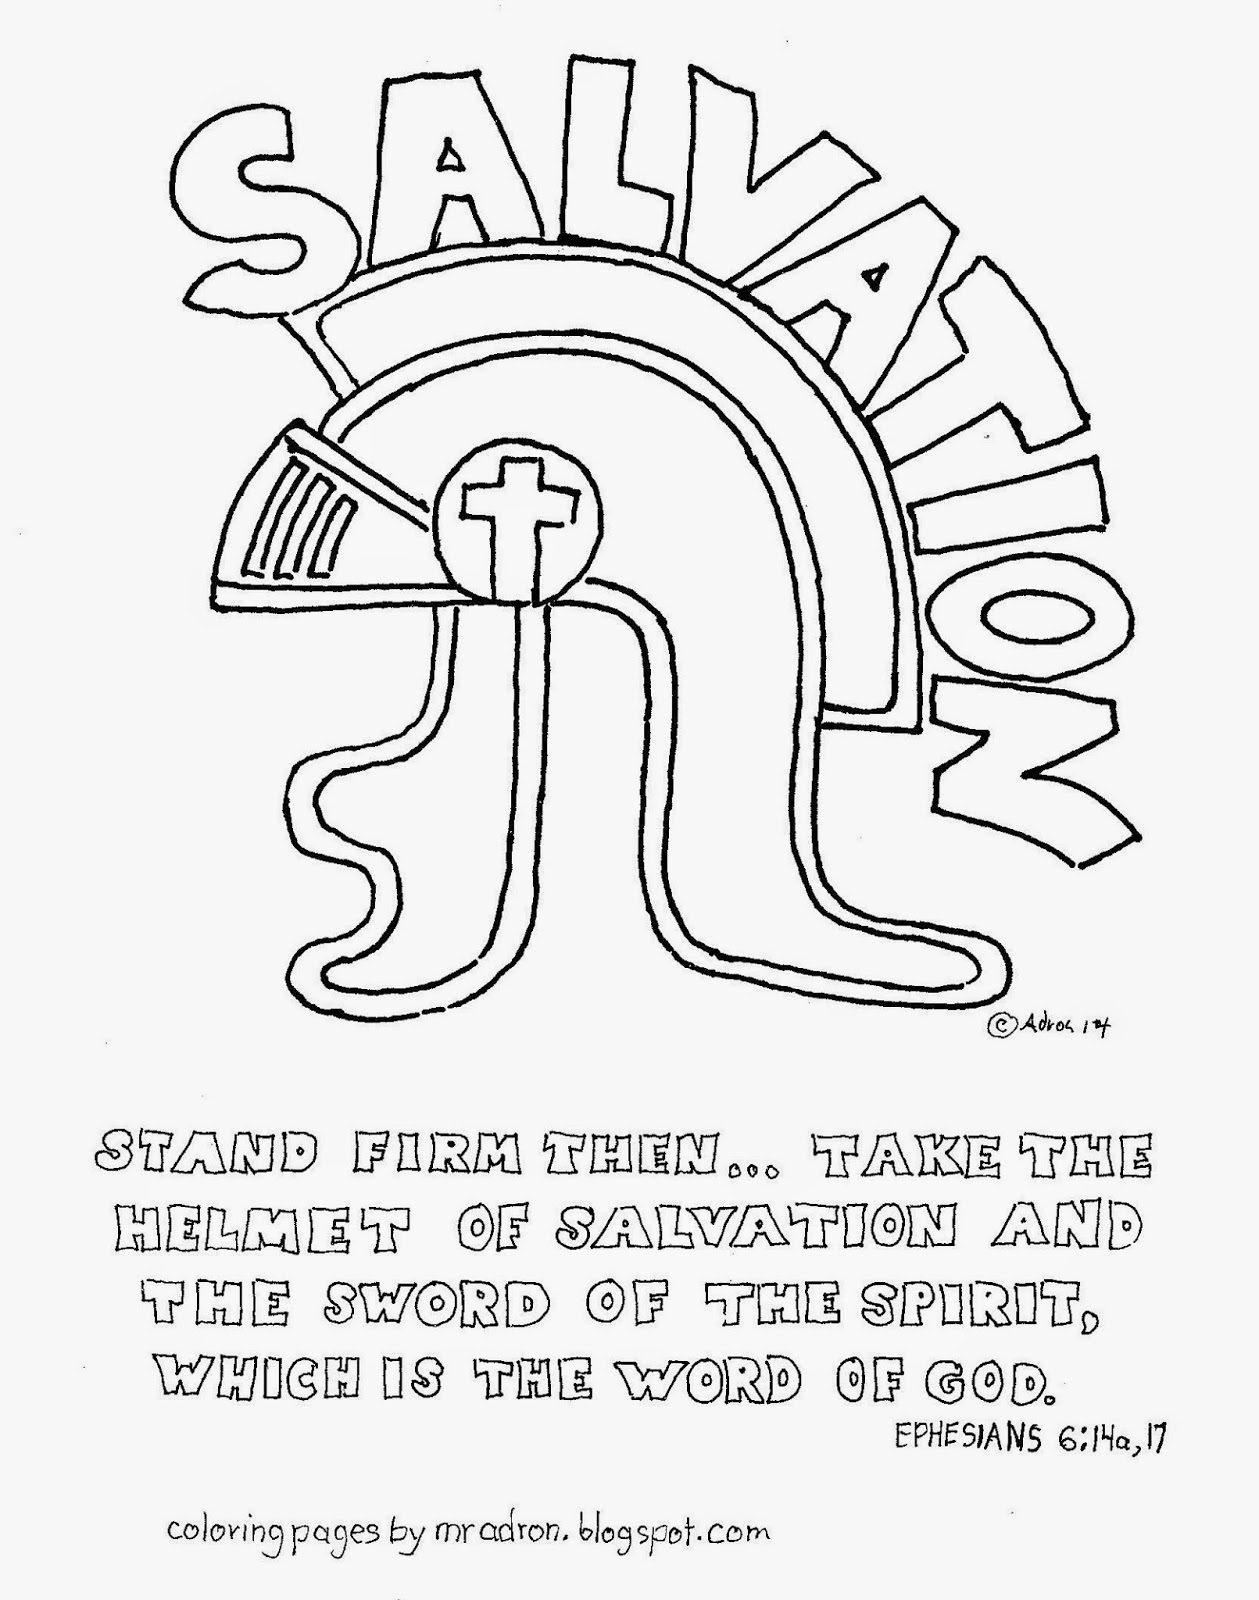 Coloring Pages Of Helmet Of Salvation